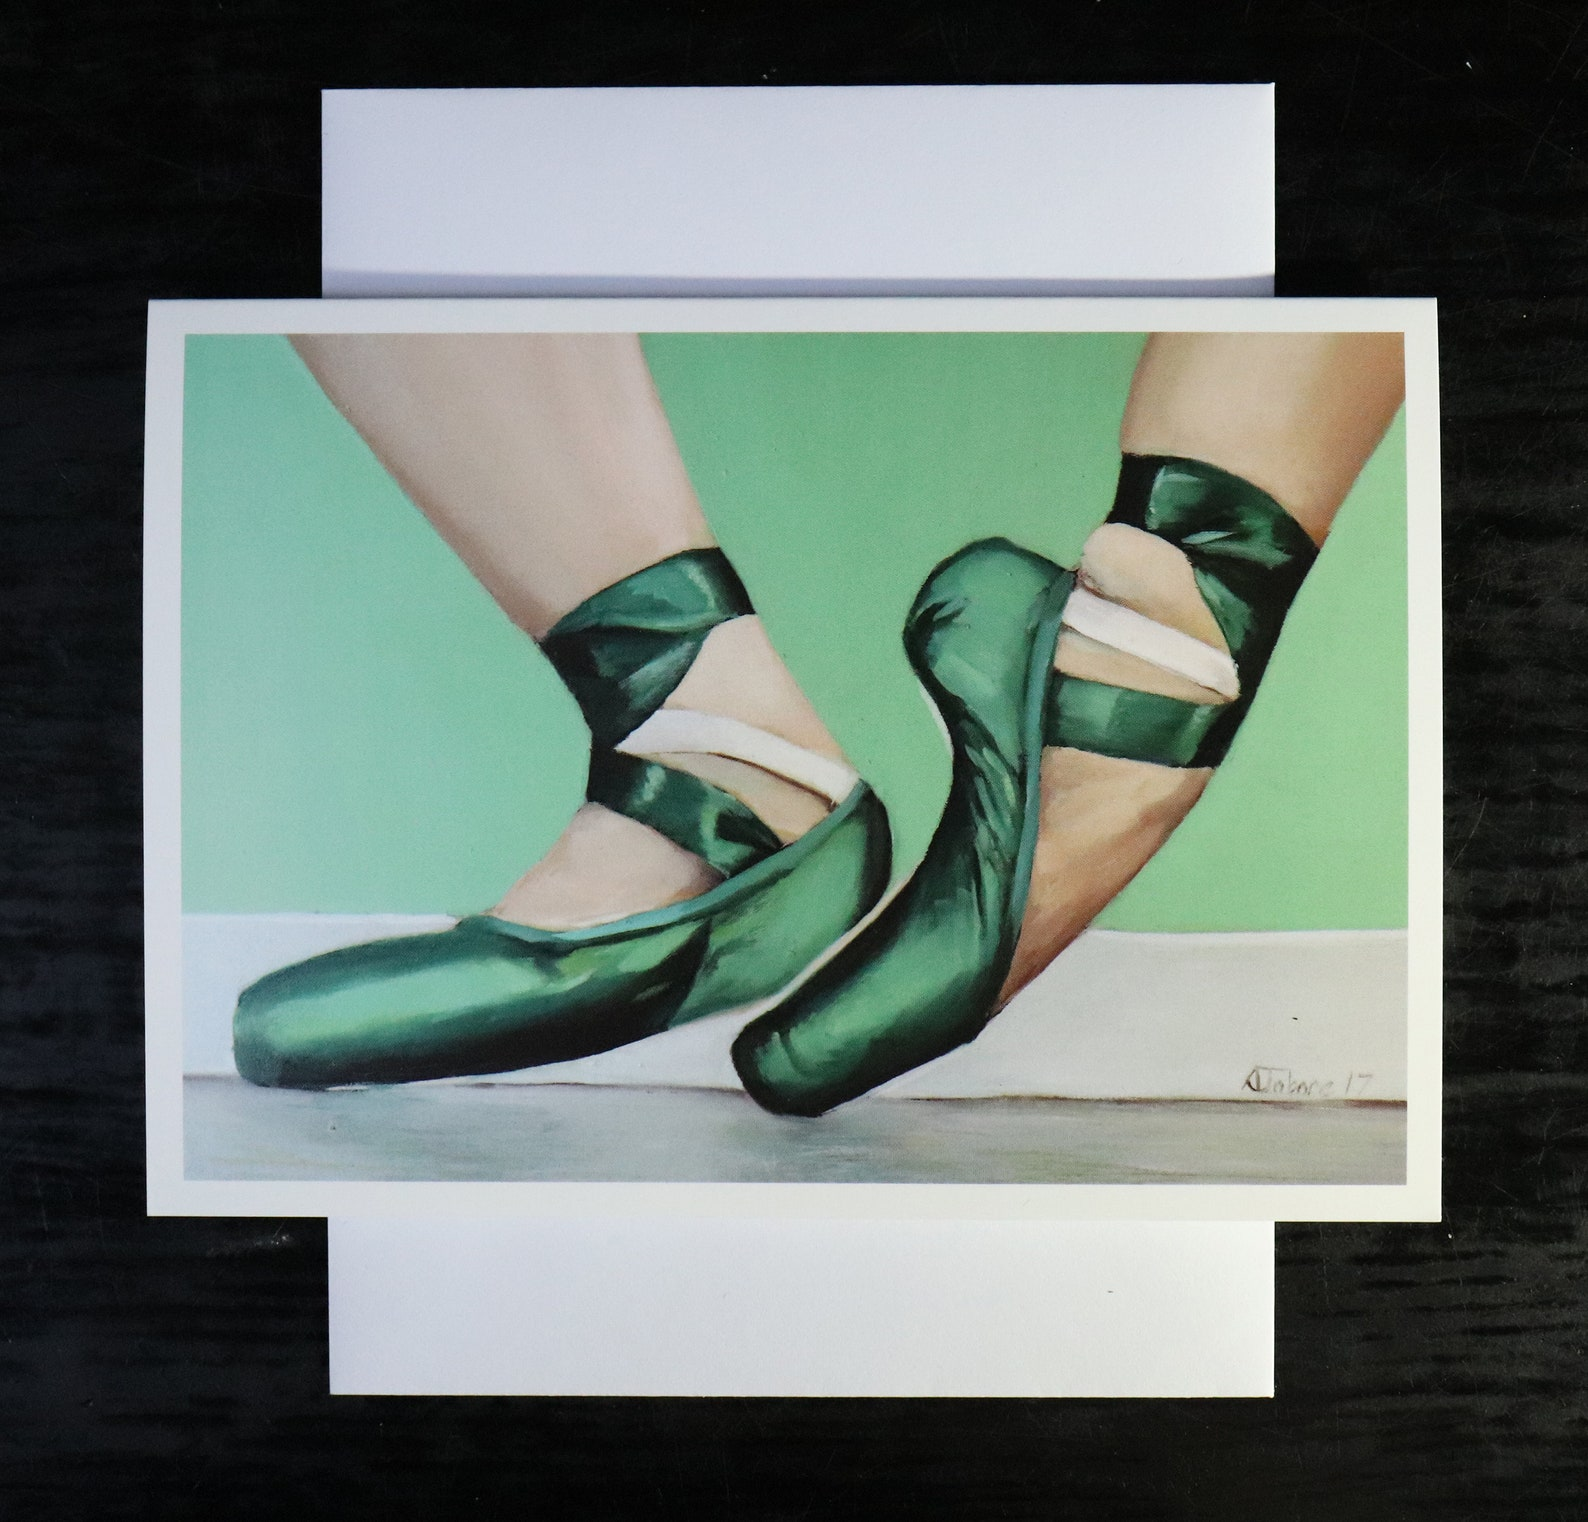 green ballet shoes, blank greeting card, artwork print /birthday cards, ballet painting, shoes art prints by uk artist jabore